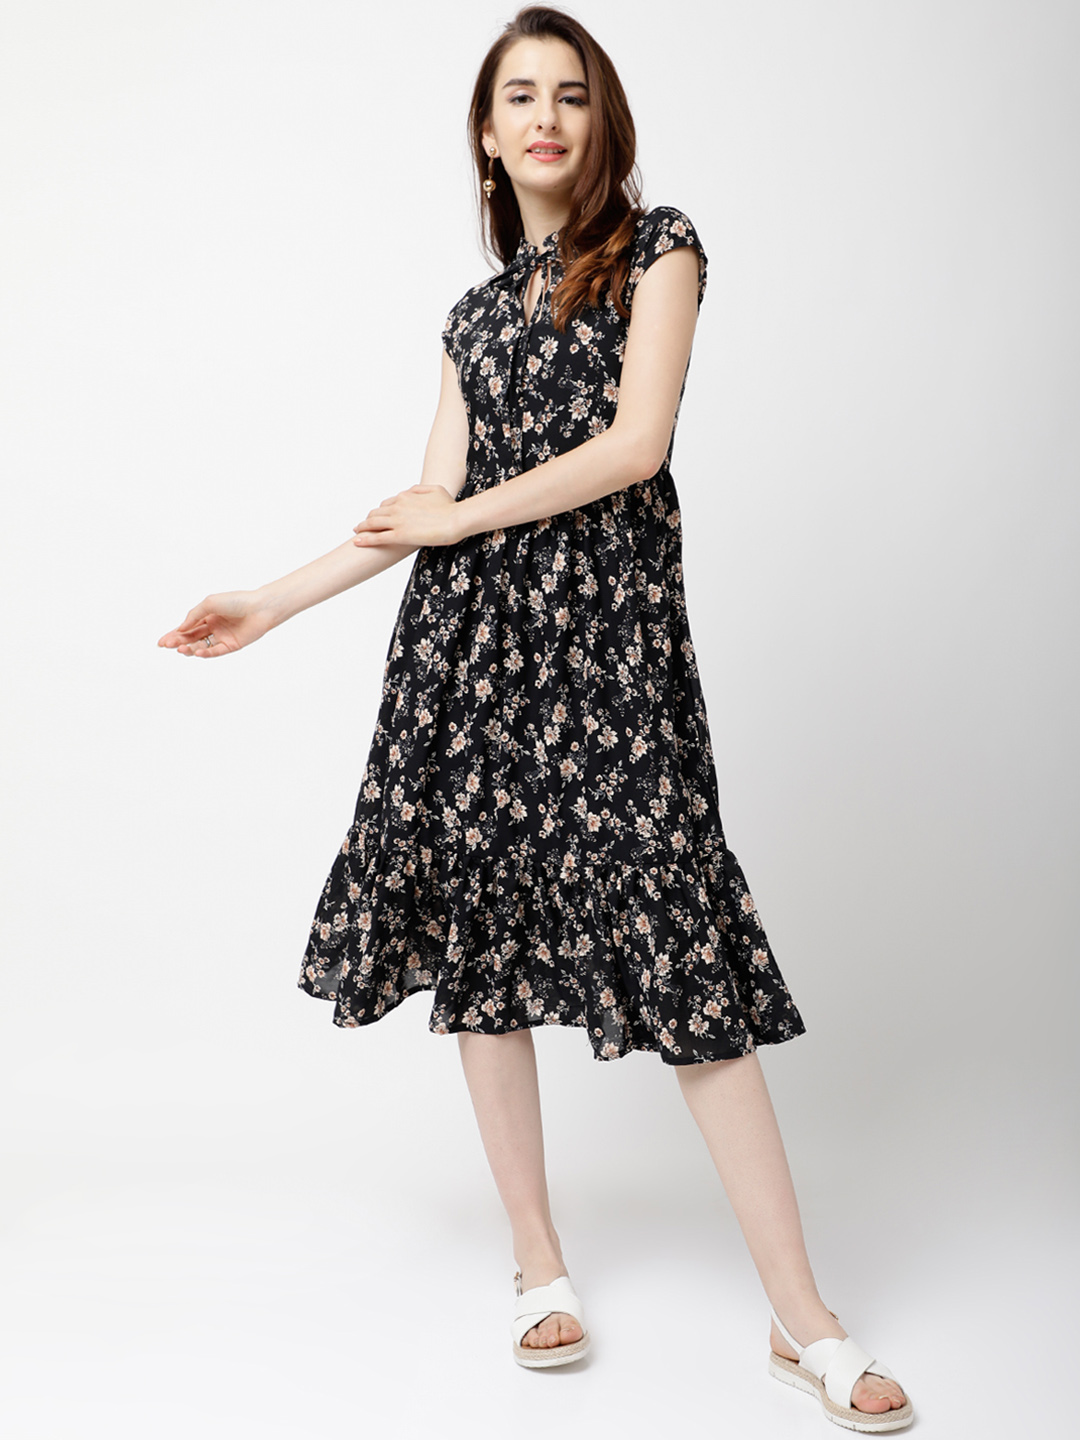 70aee31b7e3 Buy Tokyo Talkies Women Black Printed Fit and Flare Dress Online ...